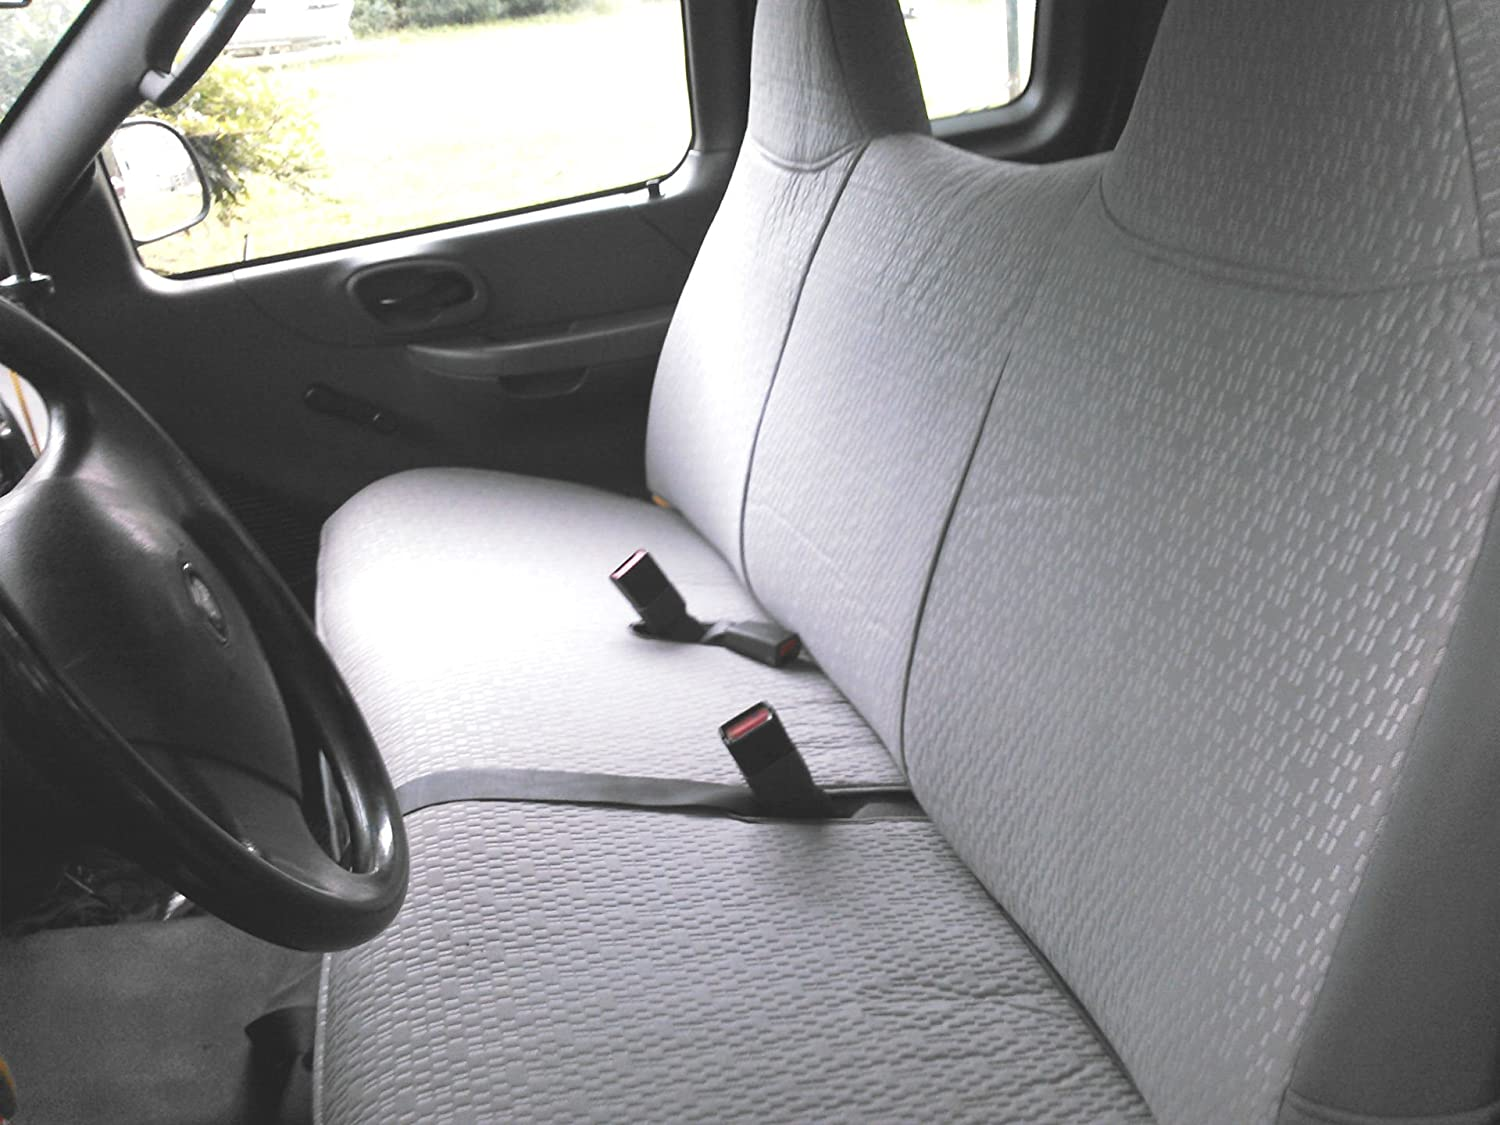 Durafit Seat Covers F243-V7 Ford F150 Truck and Light Duty F250 Bench Seat Custom Exact Fit Seat Covers Gray Automotive Velor